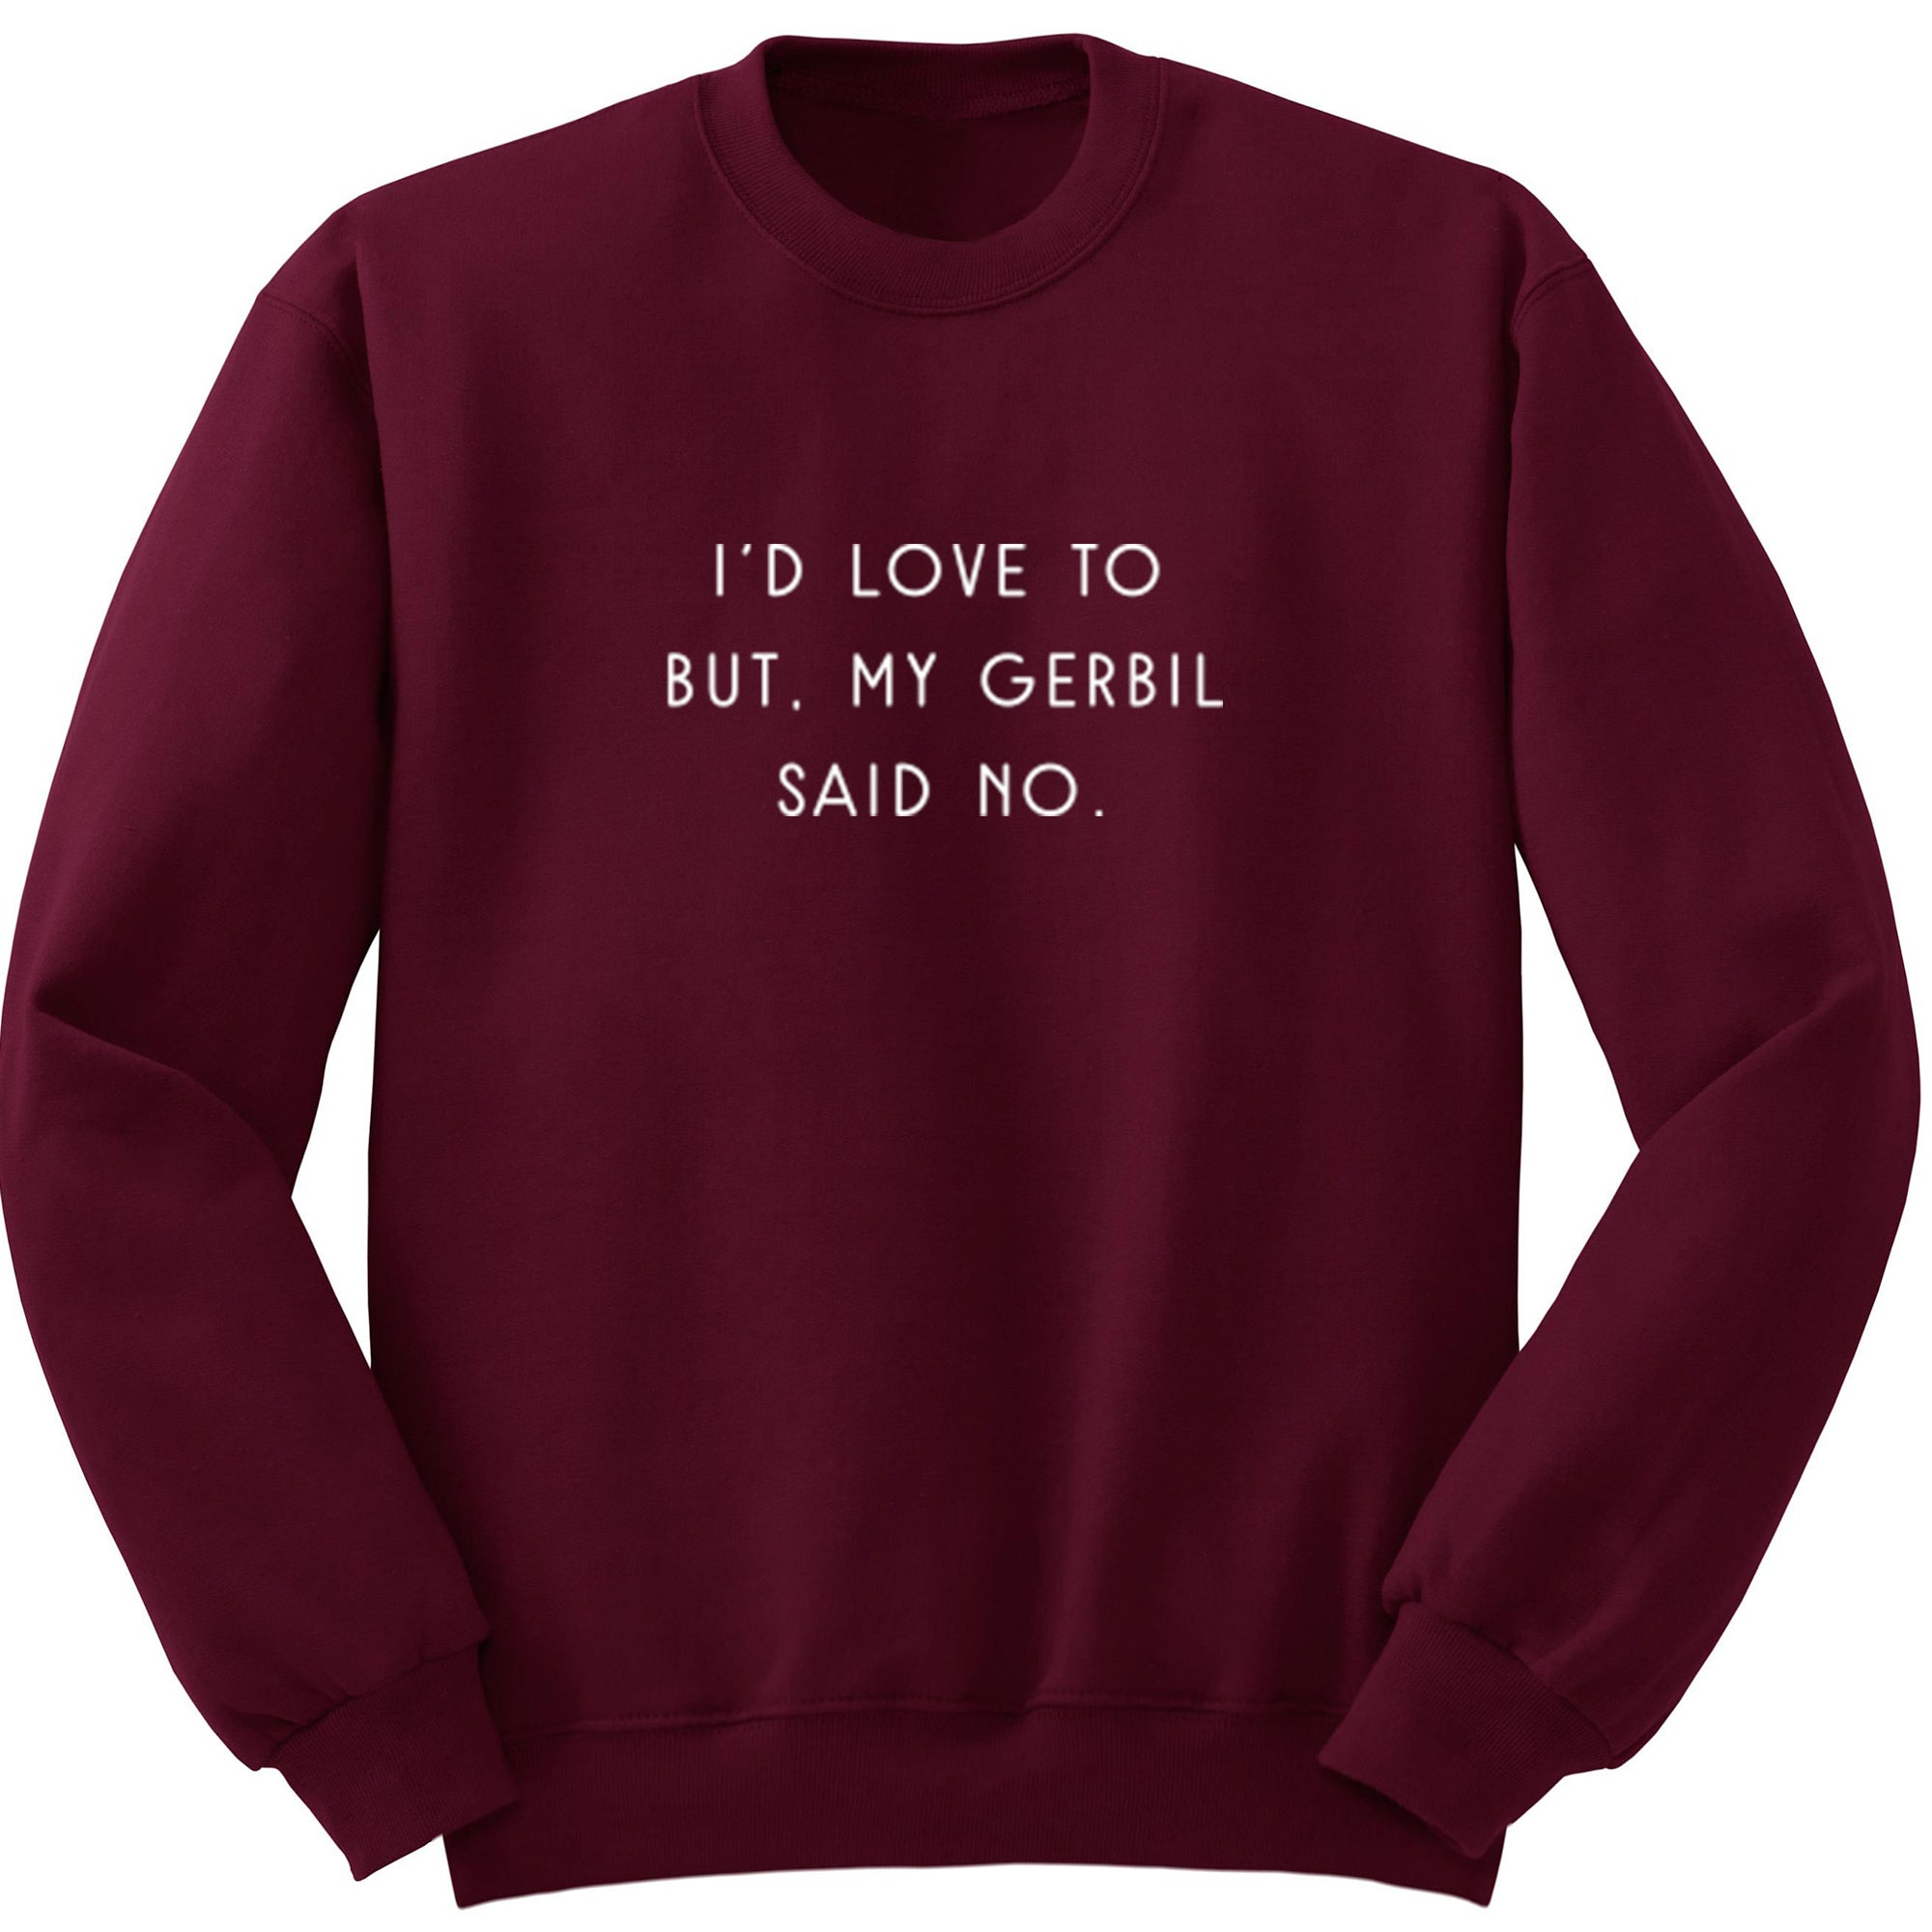 I'd Love To But, My Gerbil Said No Unisex Jumper S1063 - Illustrated Identity Ltd.